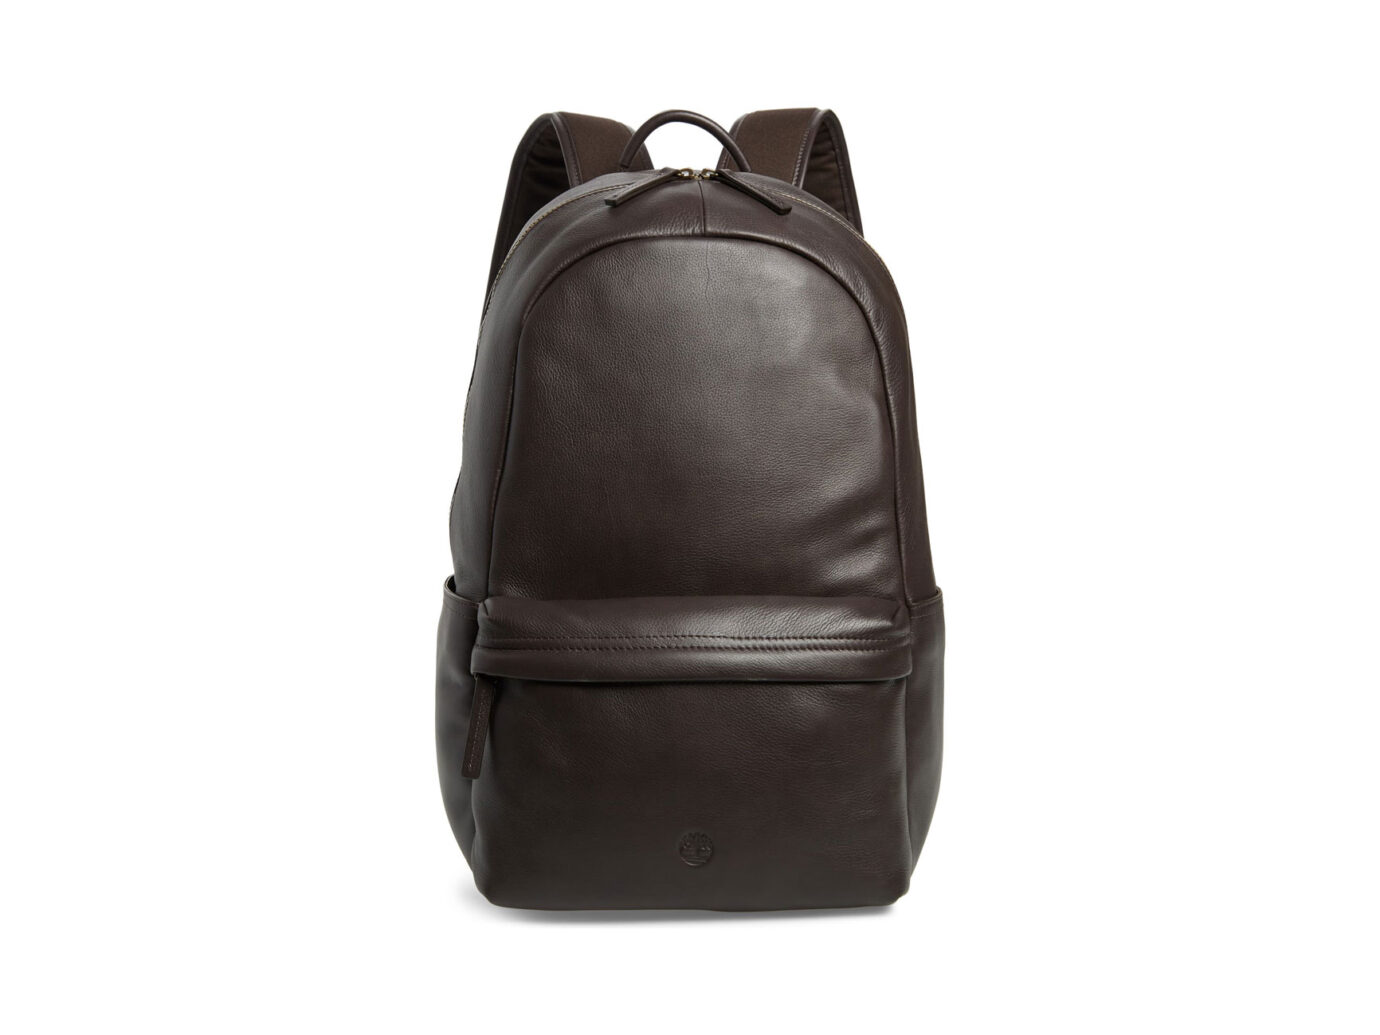 Timberland Tuckerman Leather Laptop Backpack